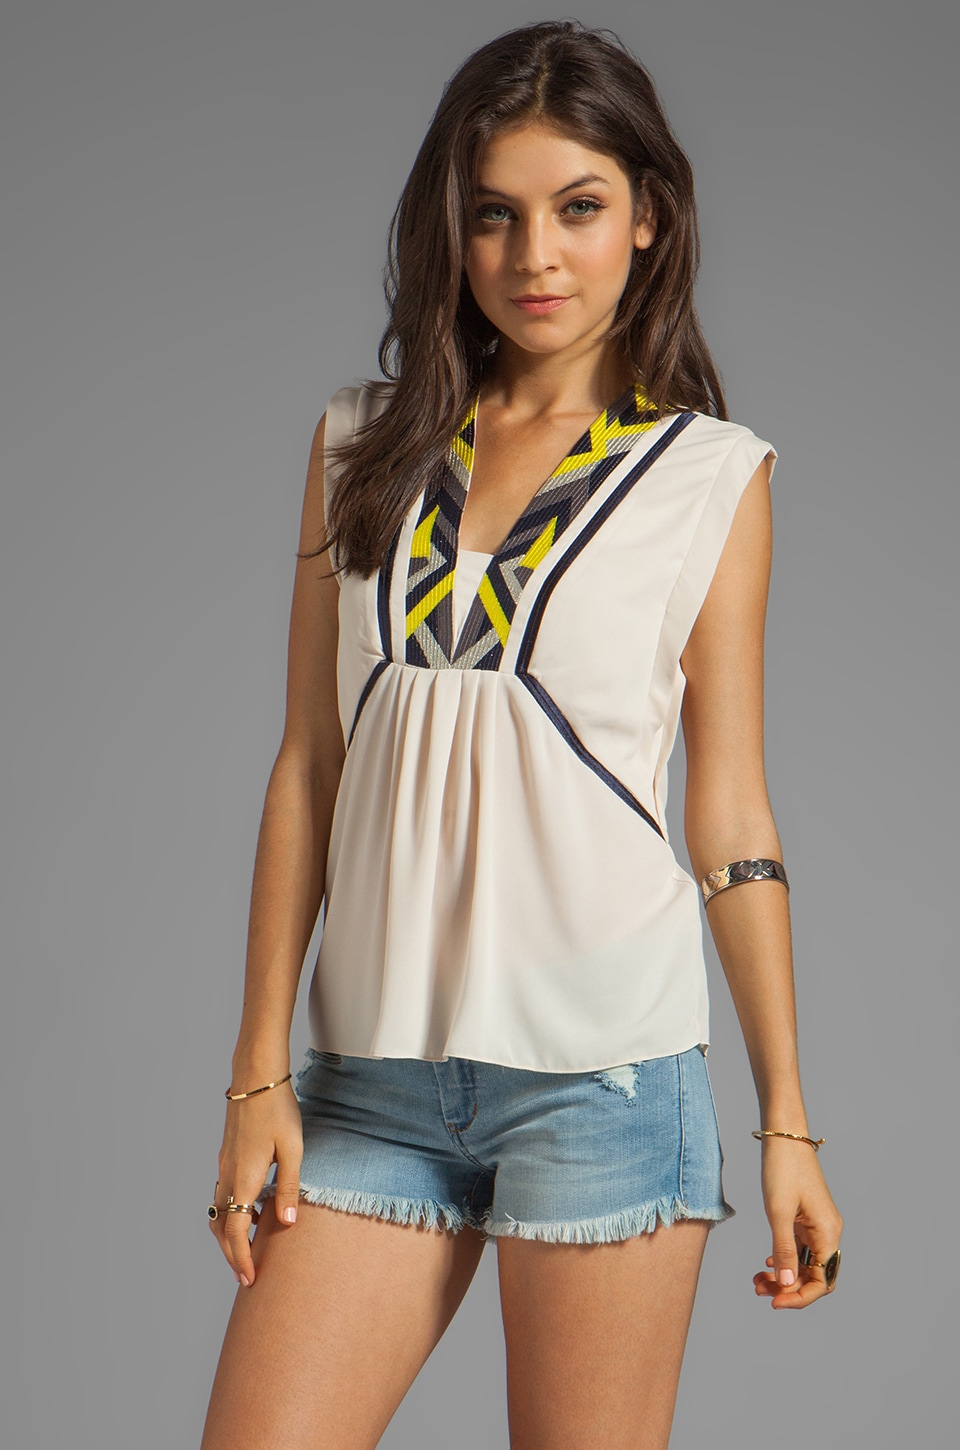 Greylin Amanda Embroidered Top in Ivory